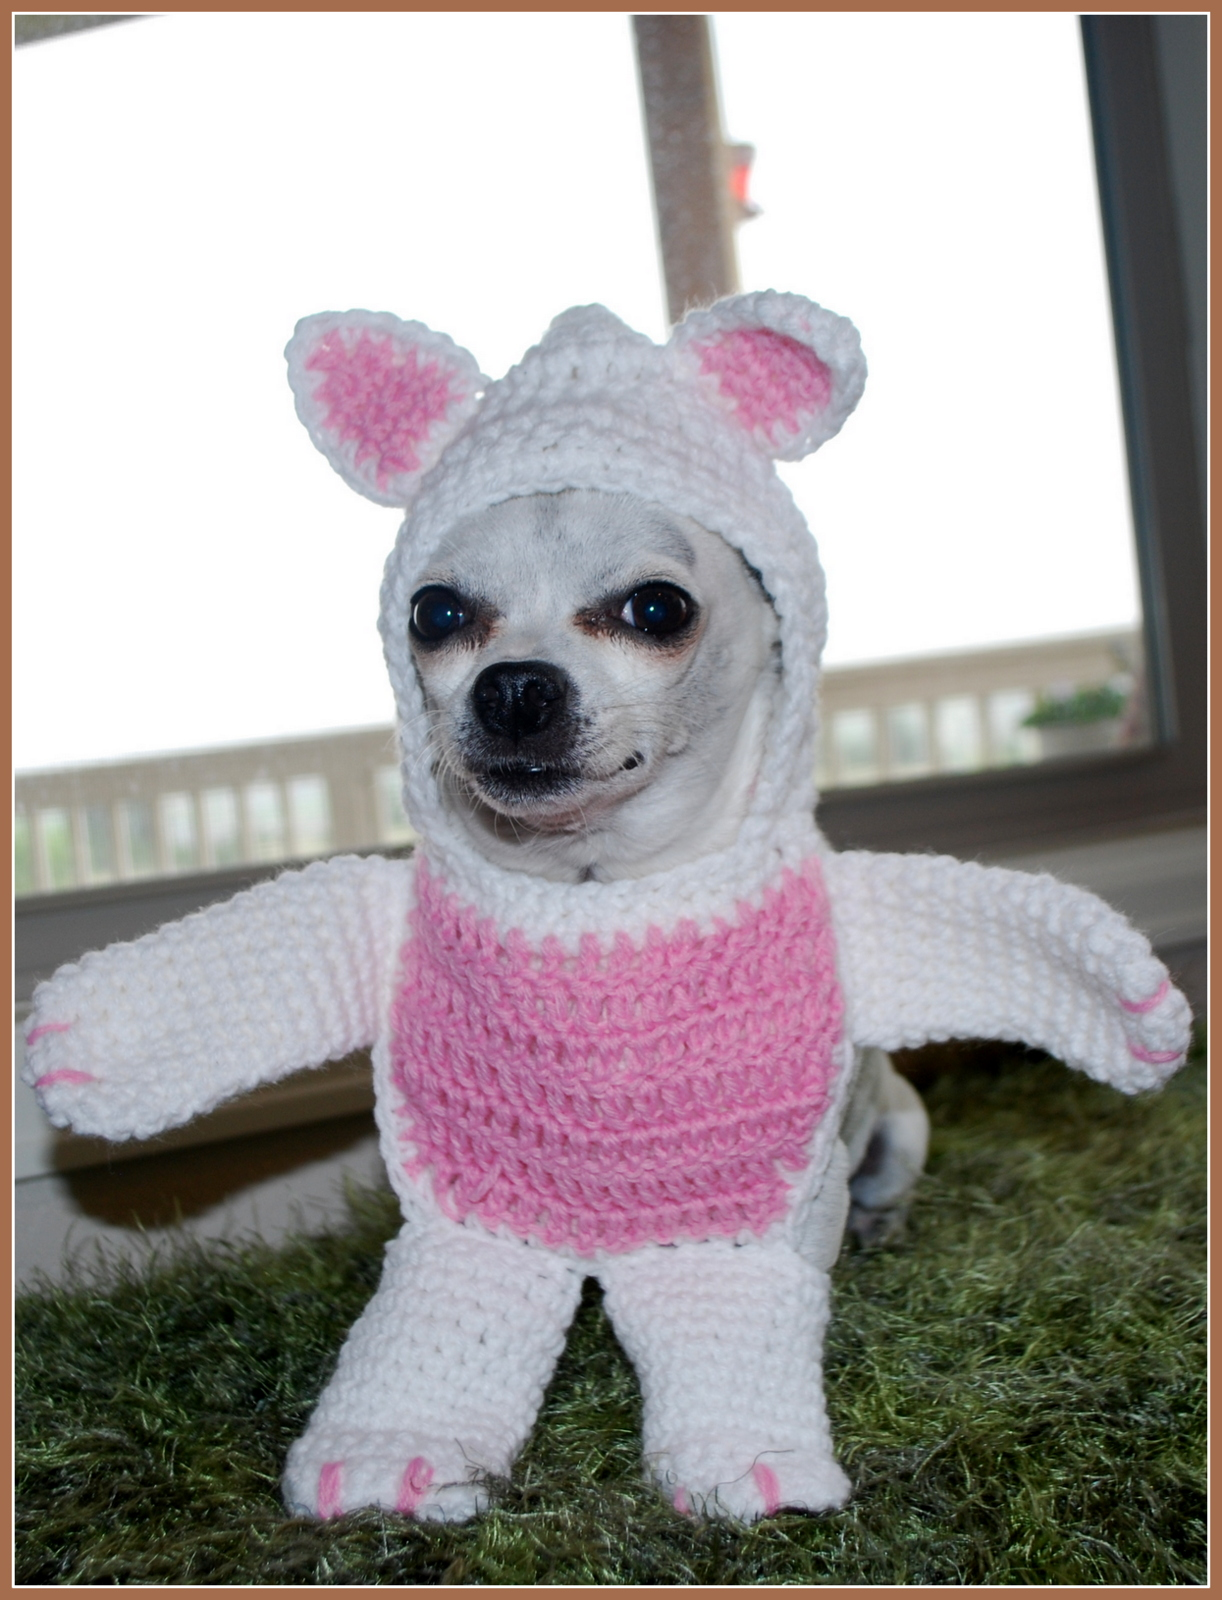 Cuddly Teddy Bear Costume! Or a cute little bunny. & Posh Pooch Designs Dog Clothes: Walking Bear Dog Costume Crochet ...